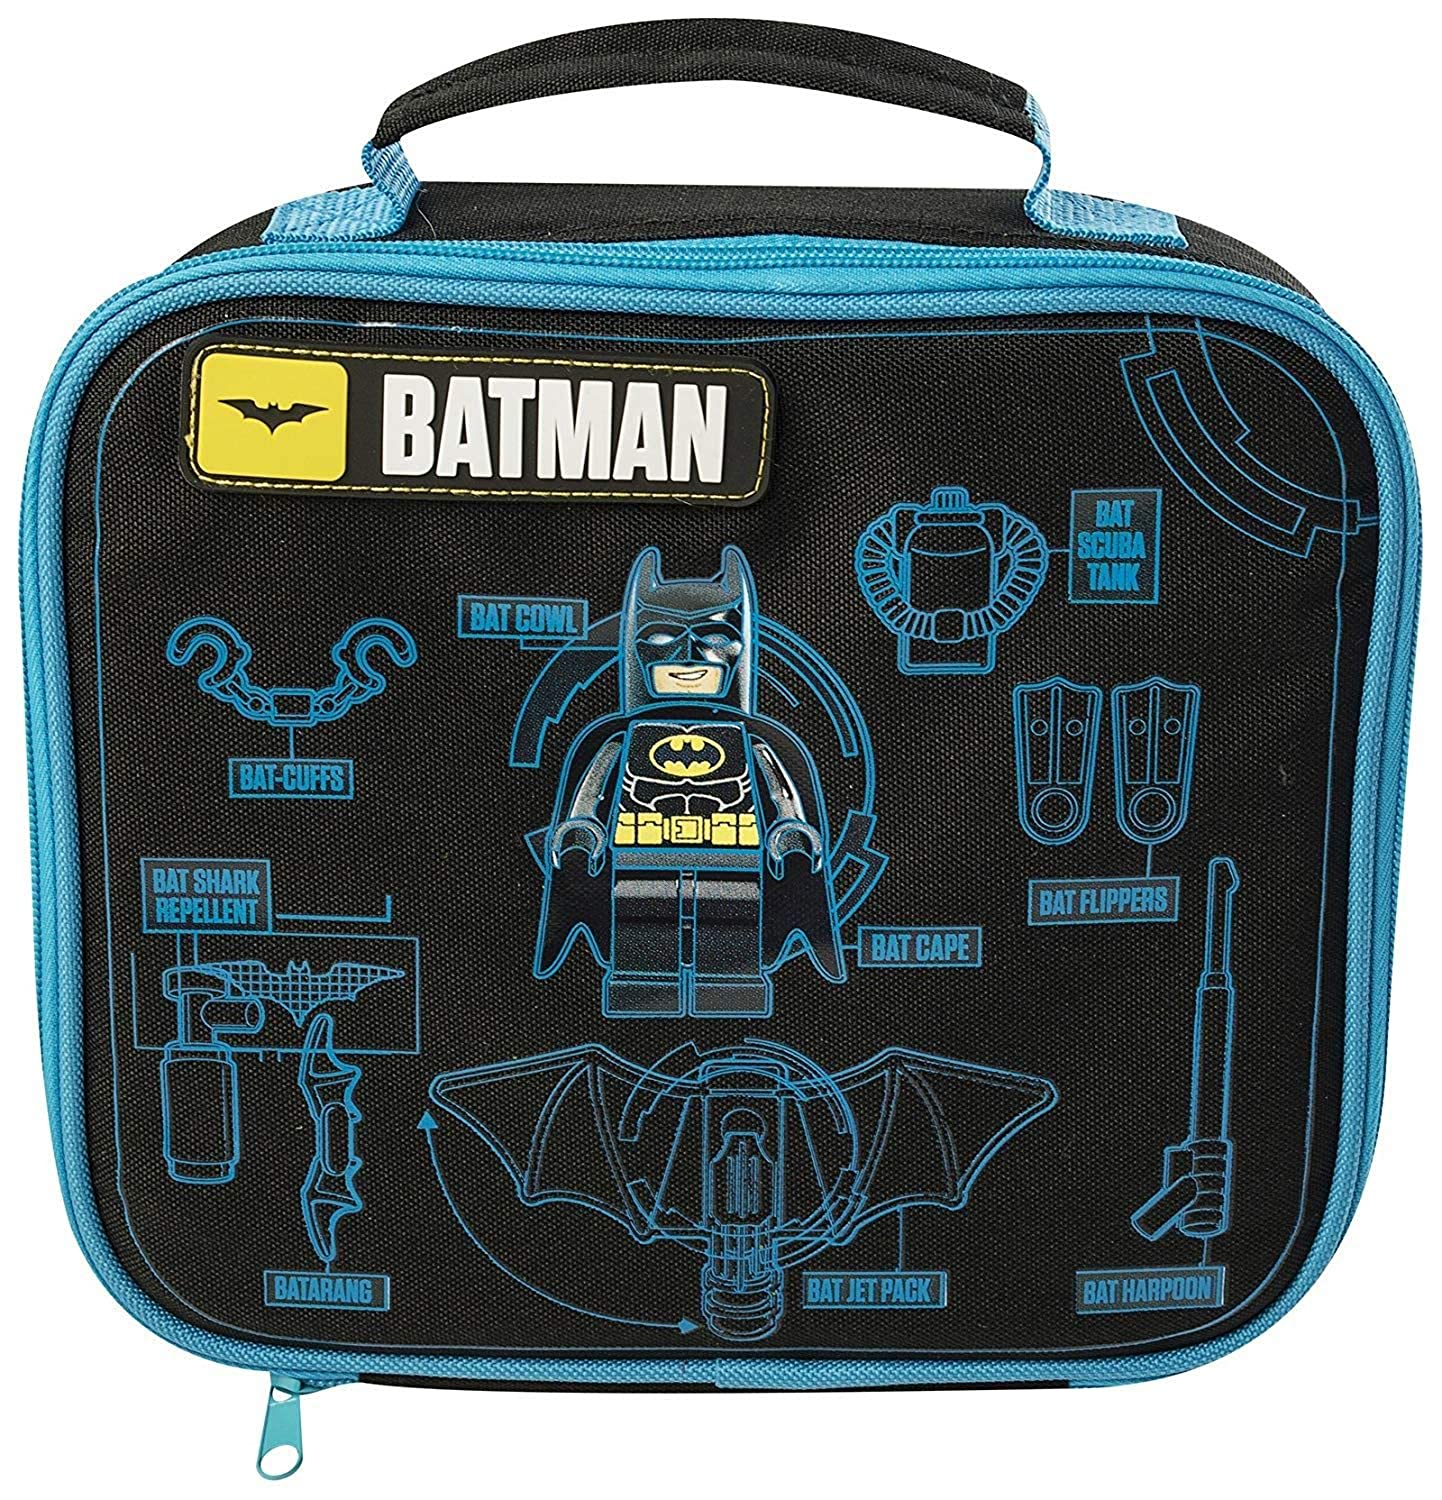 THE LEGO BATMAN MOVIE KIDS BOYS SCHOOL TRIPS INSULATED LUNCH BAG 9027